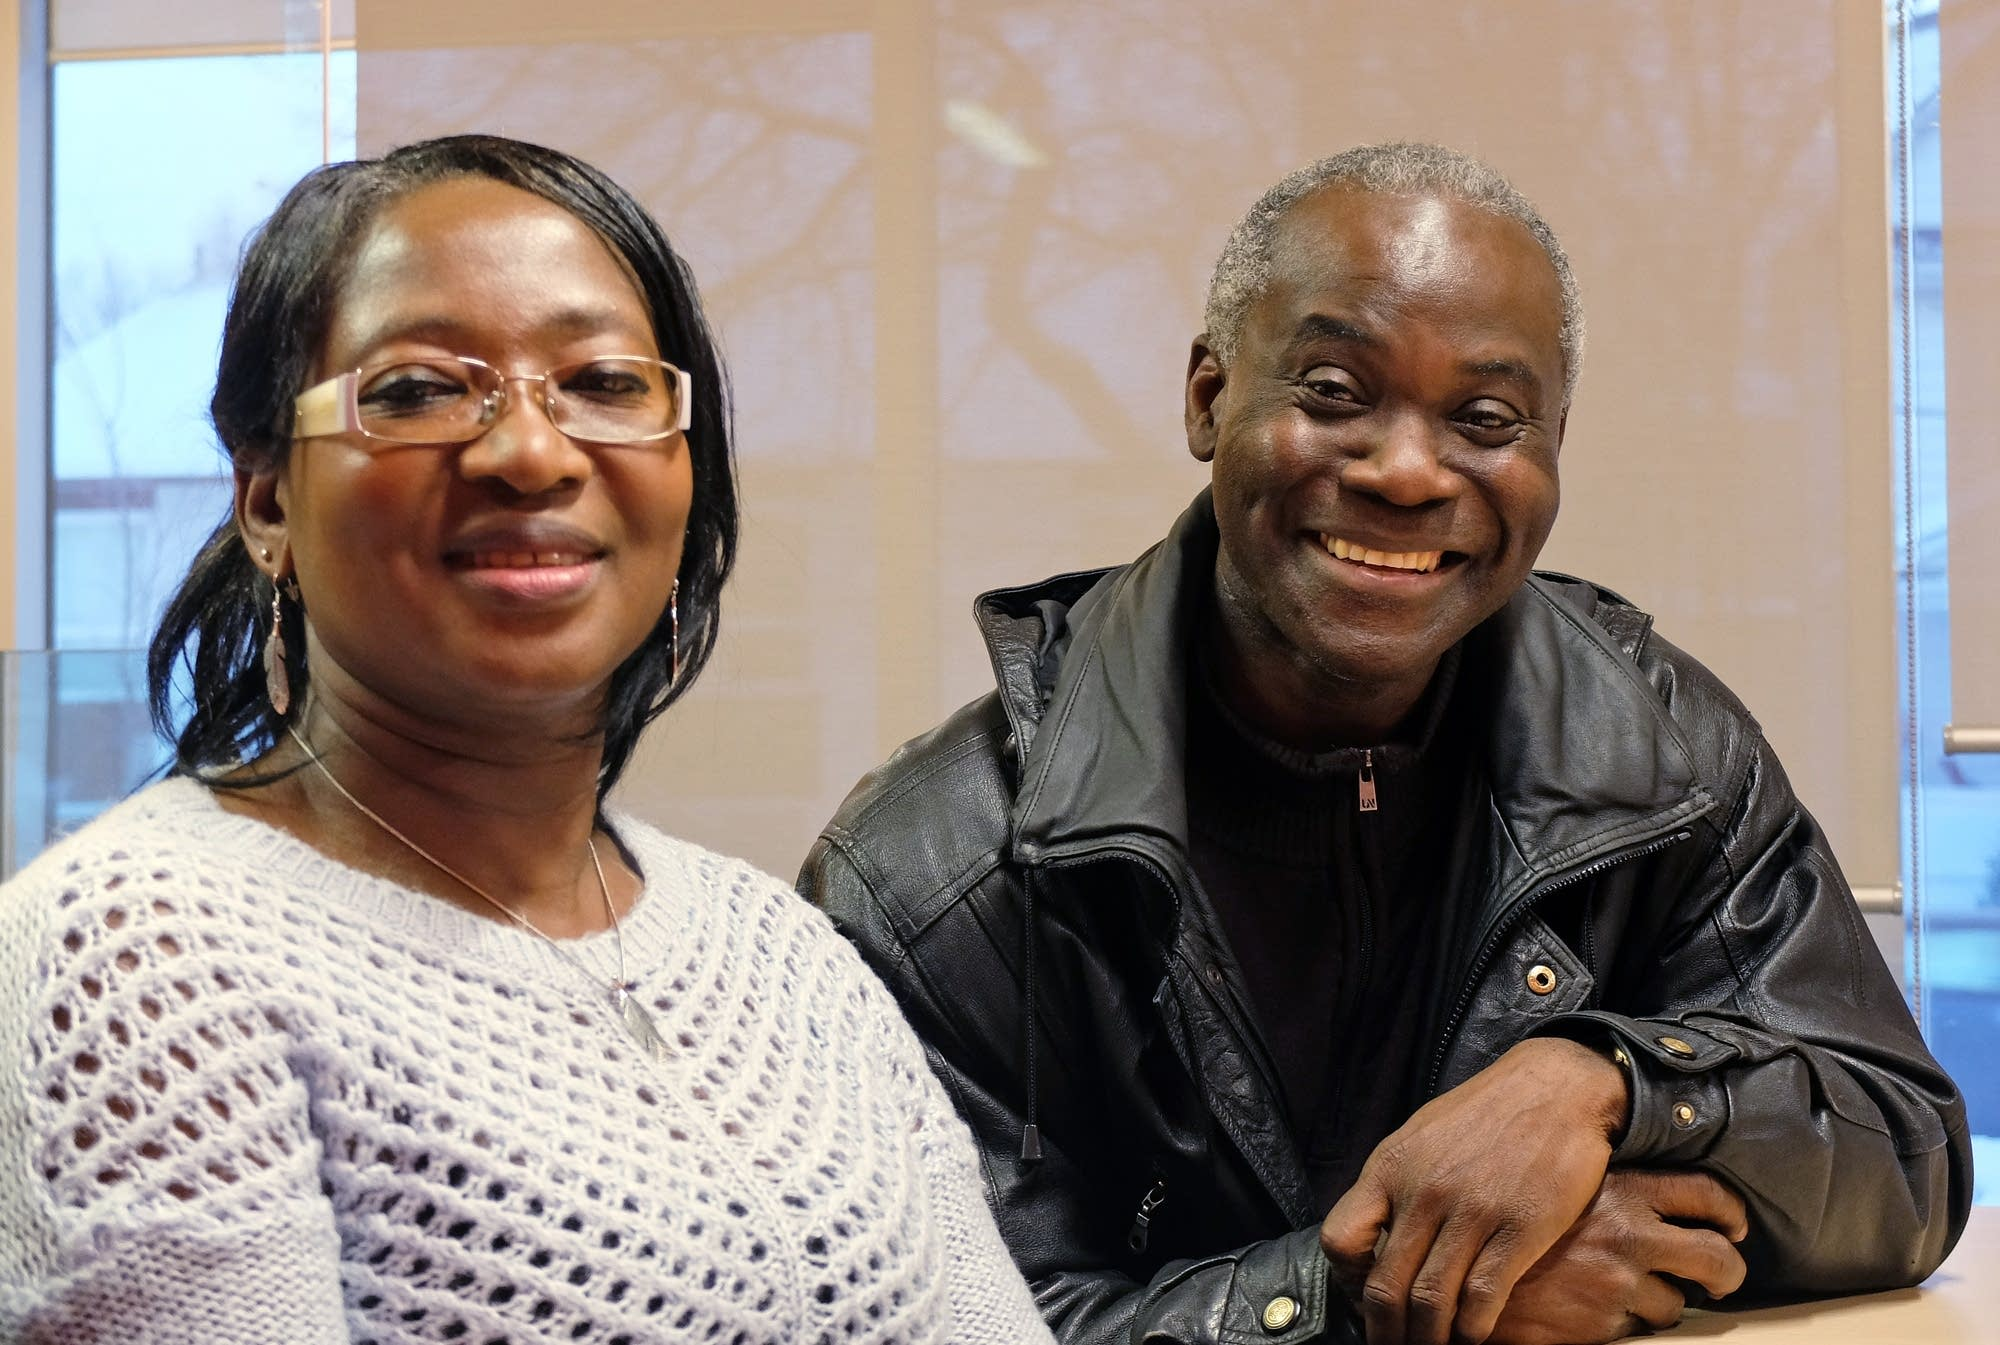 Maggie Yaboah and Frank Indome of the Ghanaian Union of Manitoba